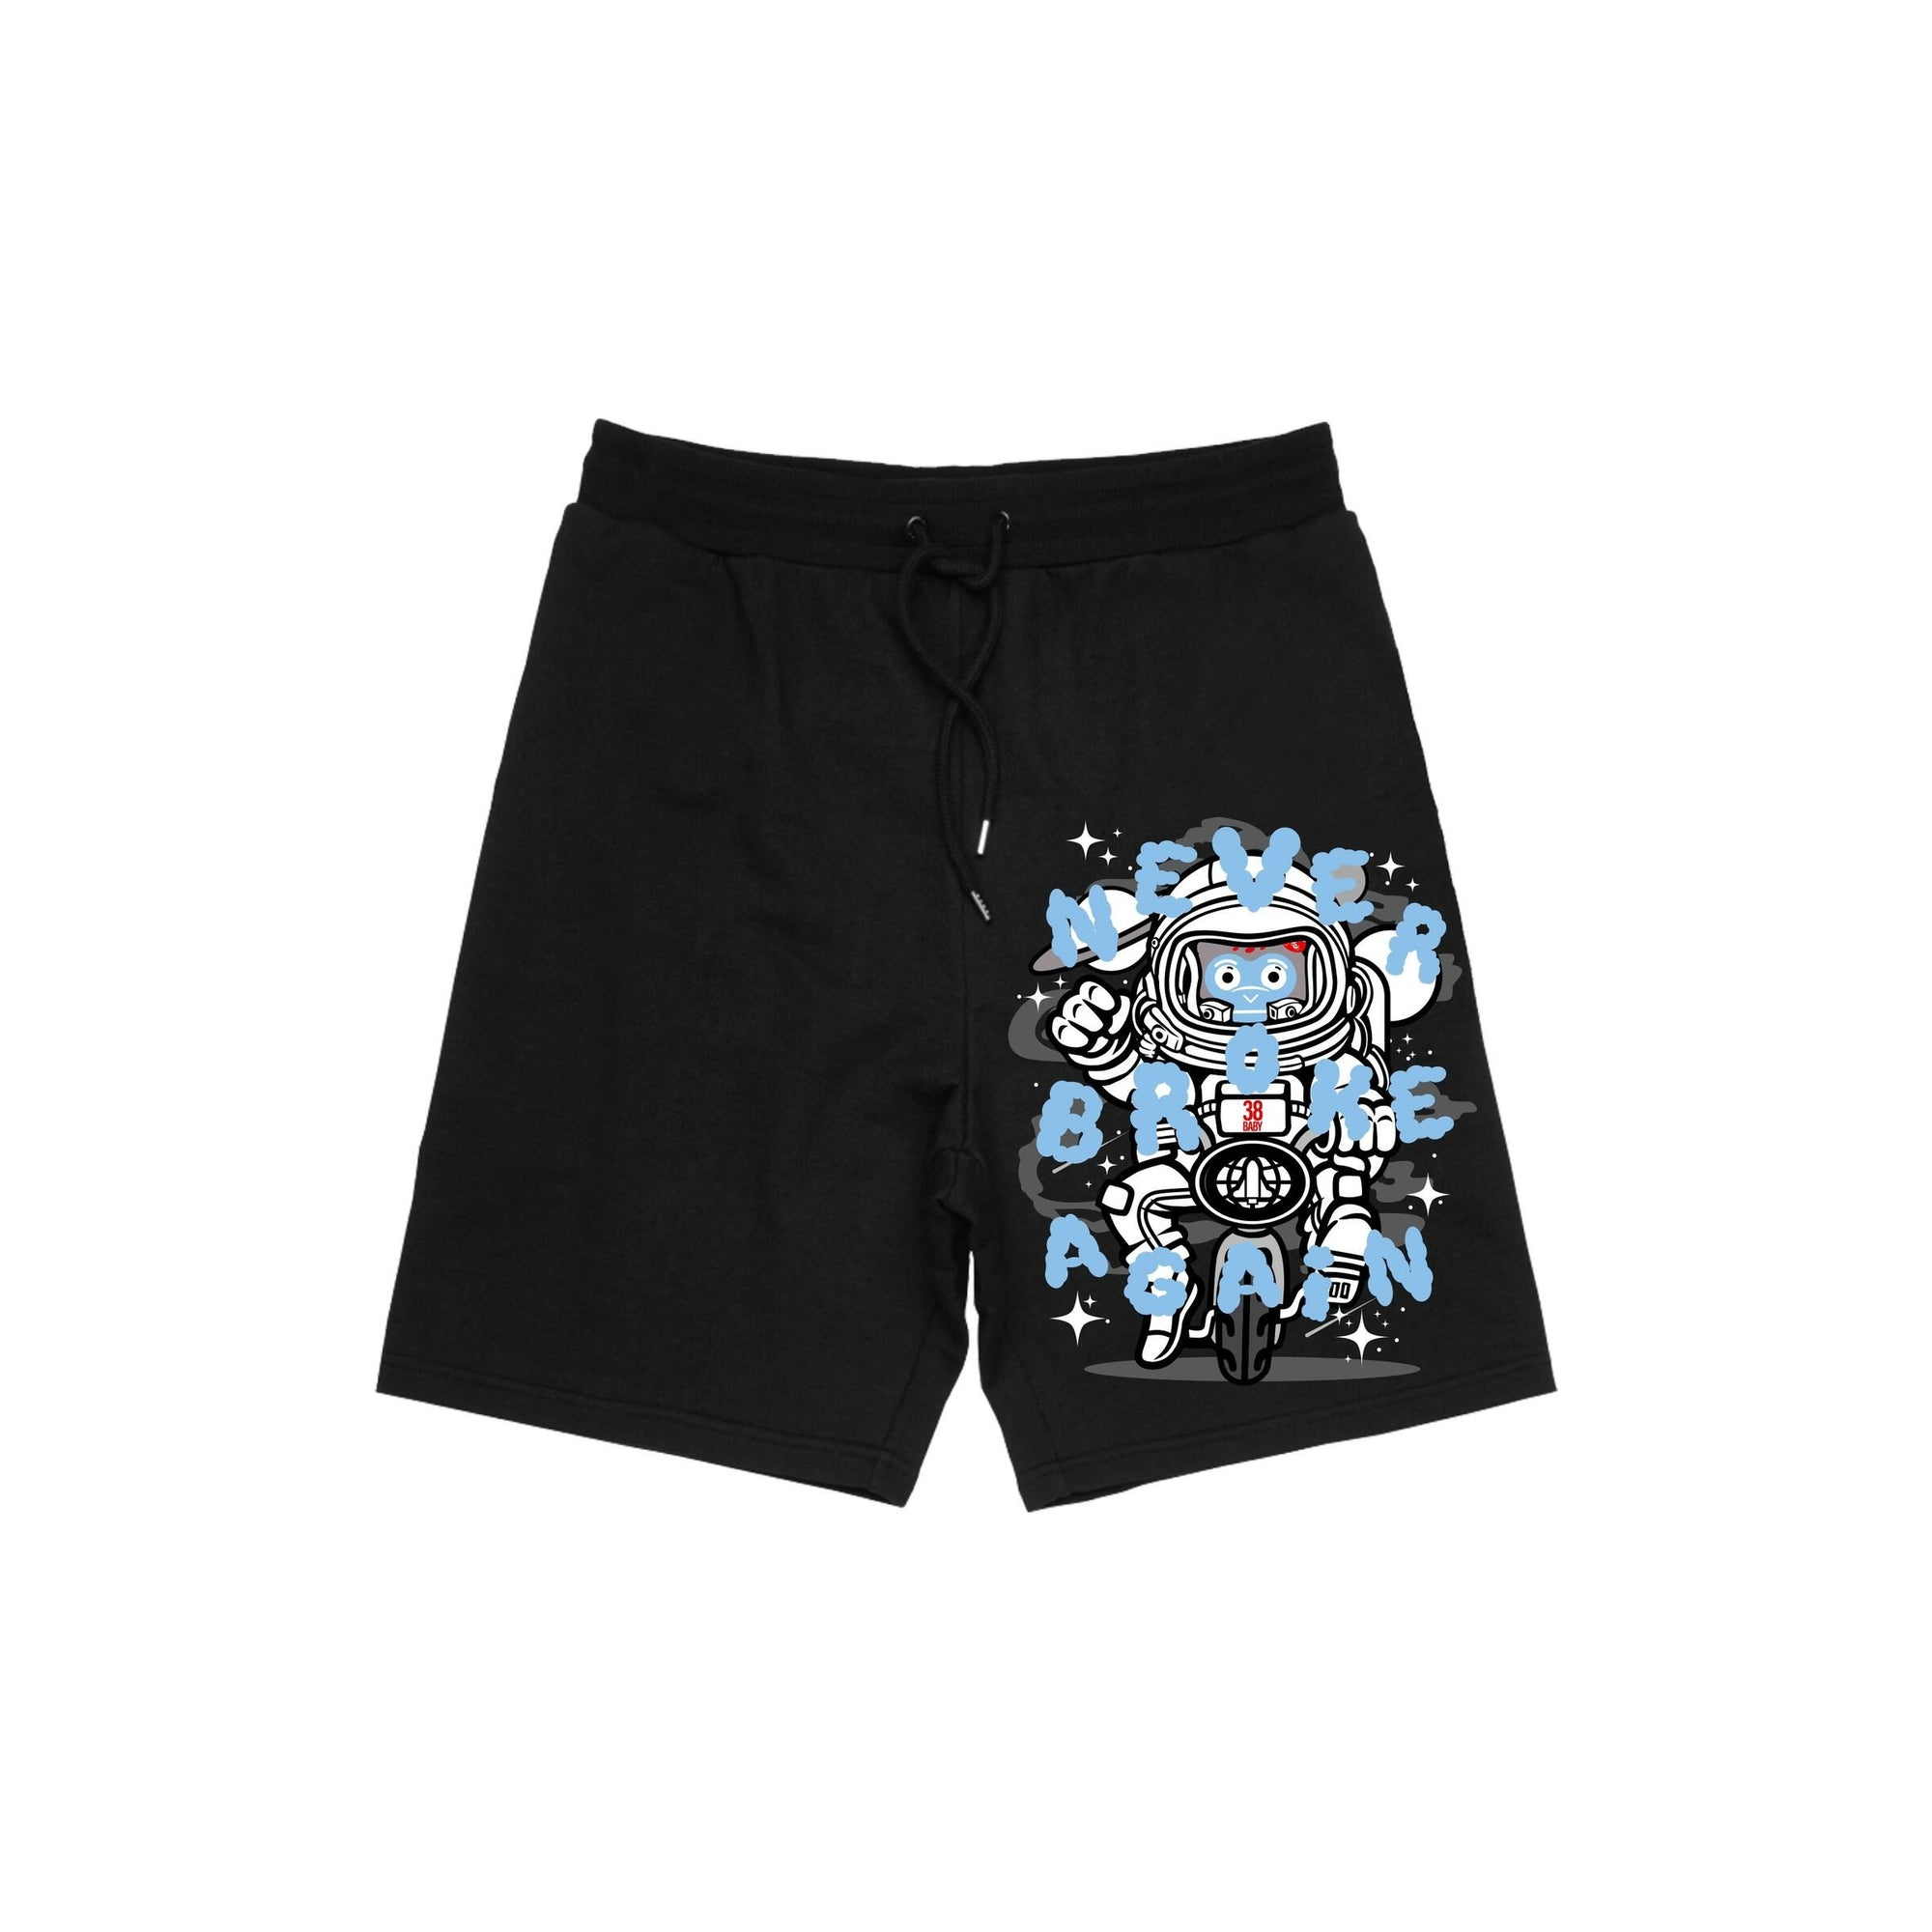 Never Broke Again Carolina Space Shorts - FLY GUYZ